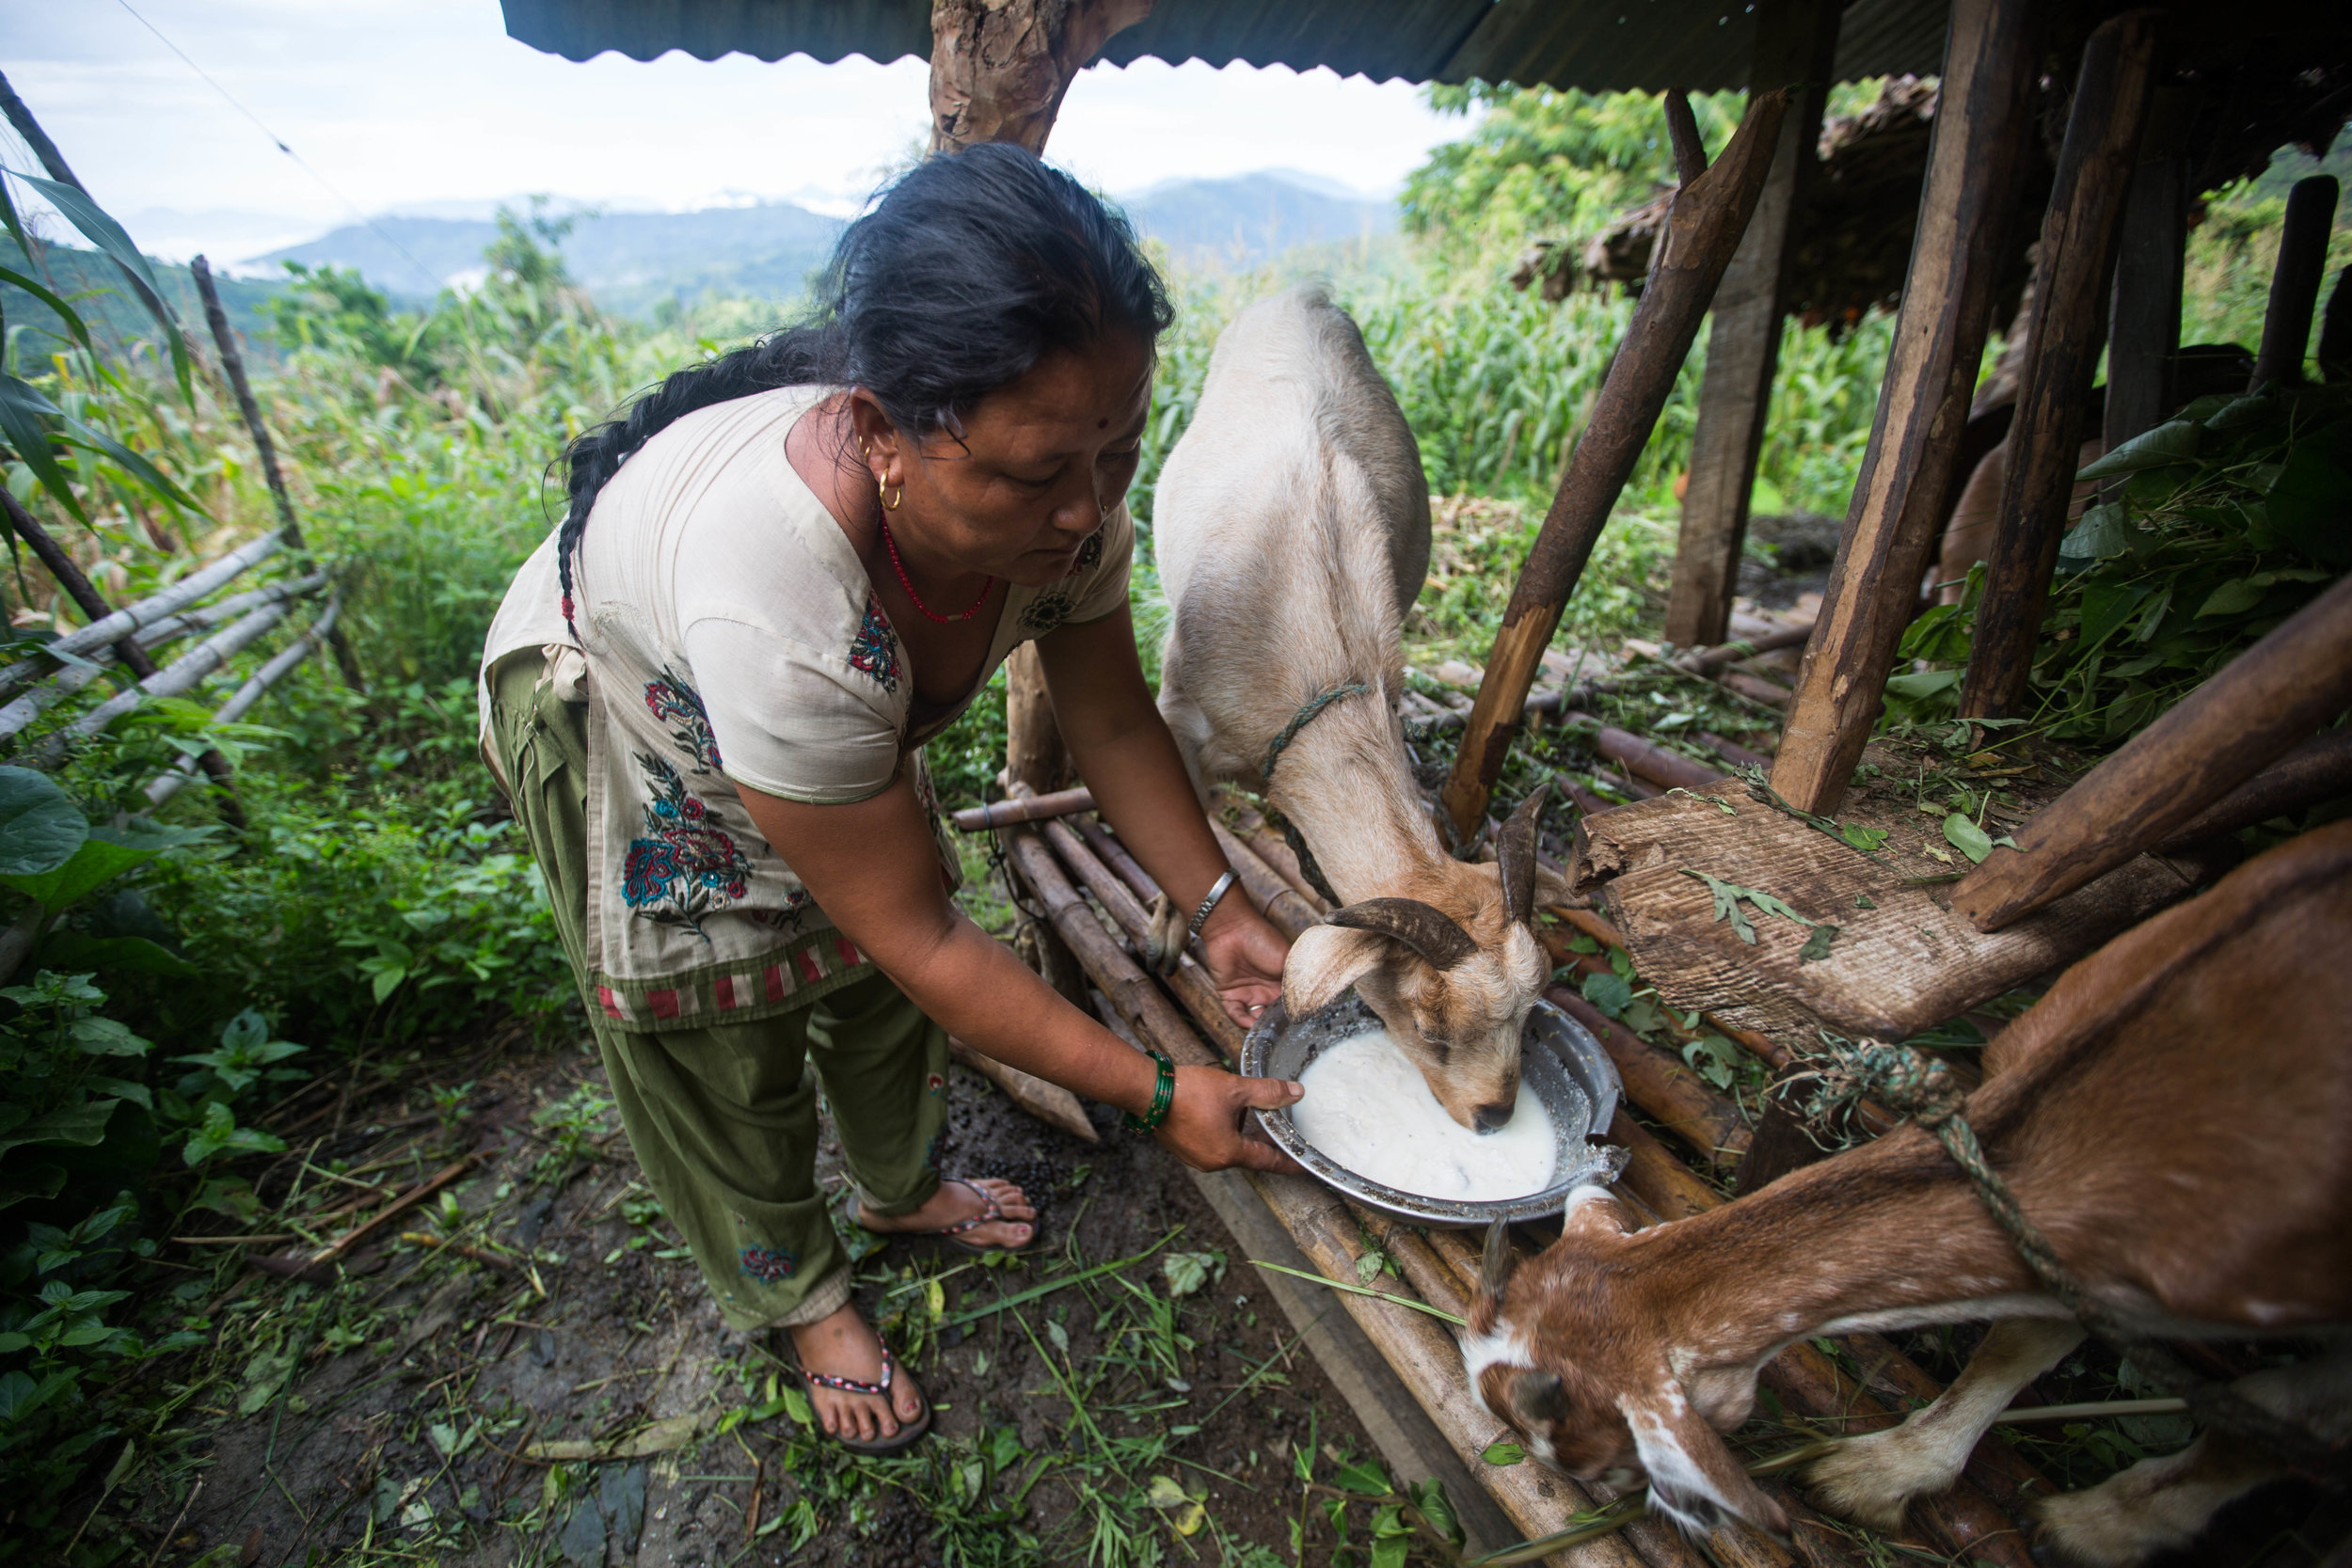 Chari feeds her goats at her home in Gorkha, Nepal, on Aug. 1, 2016.